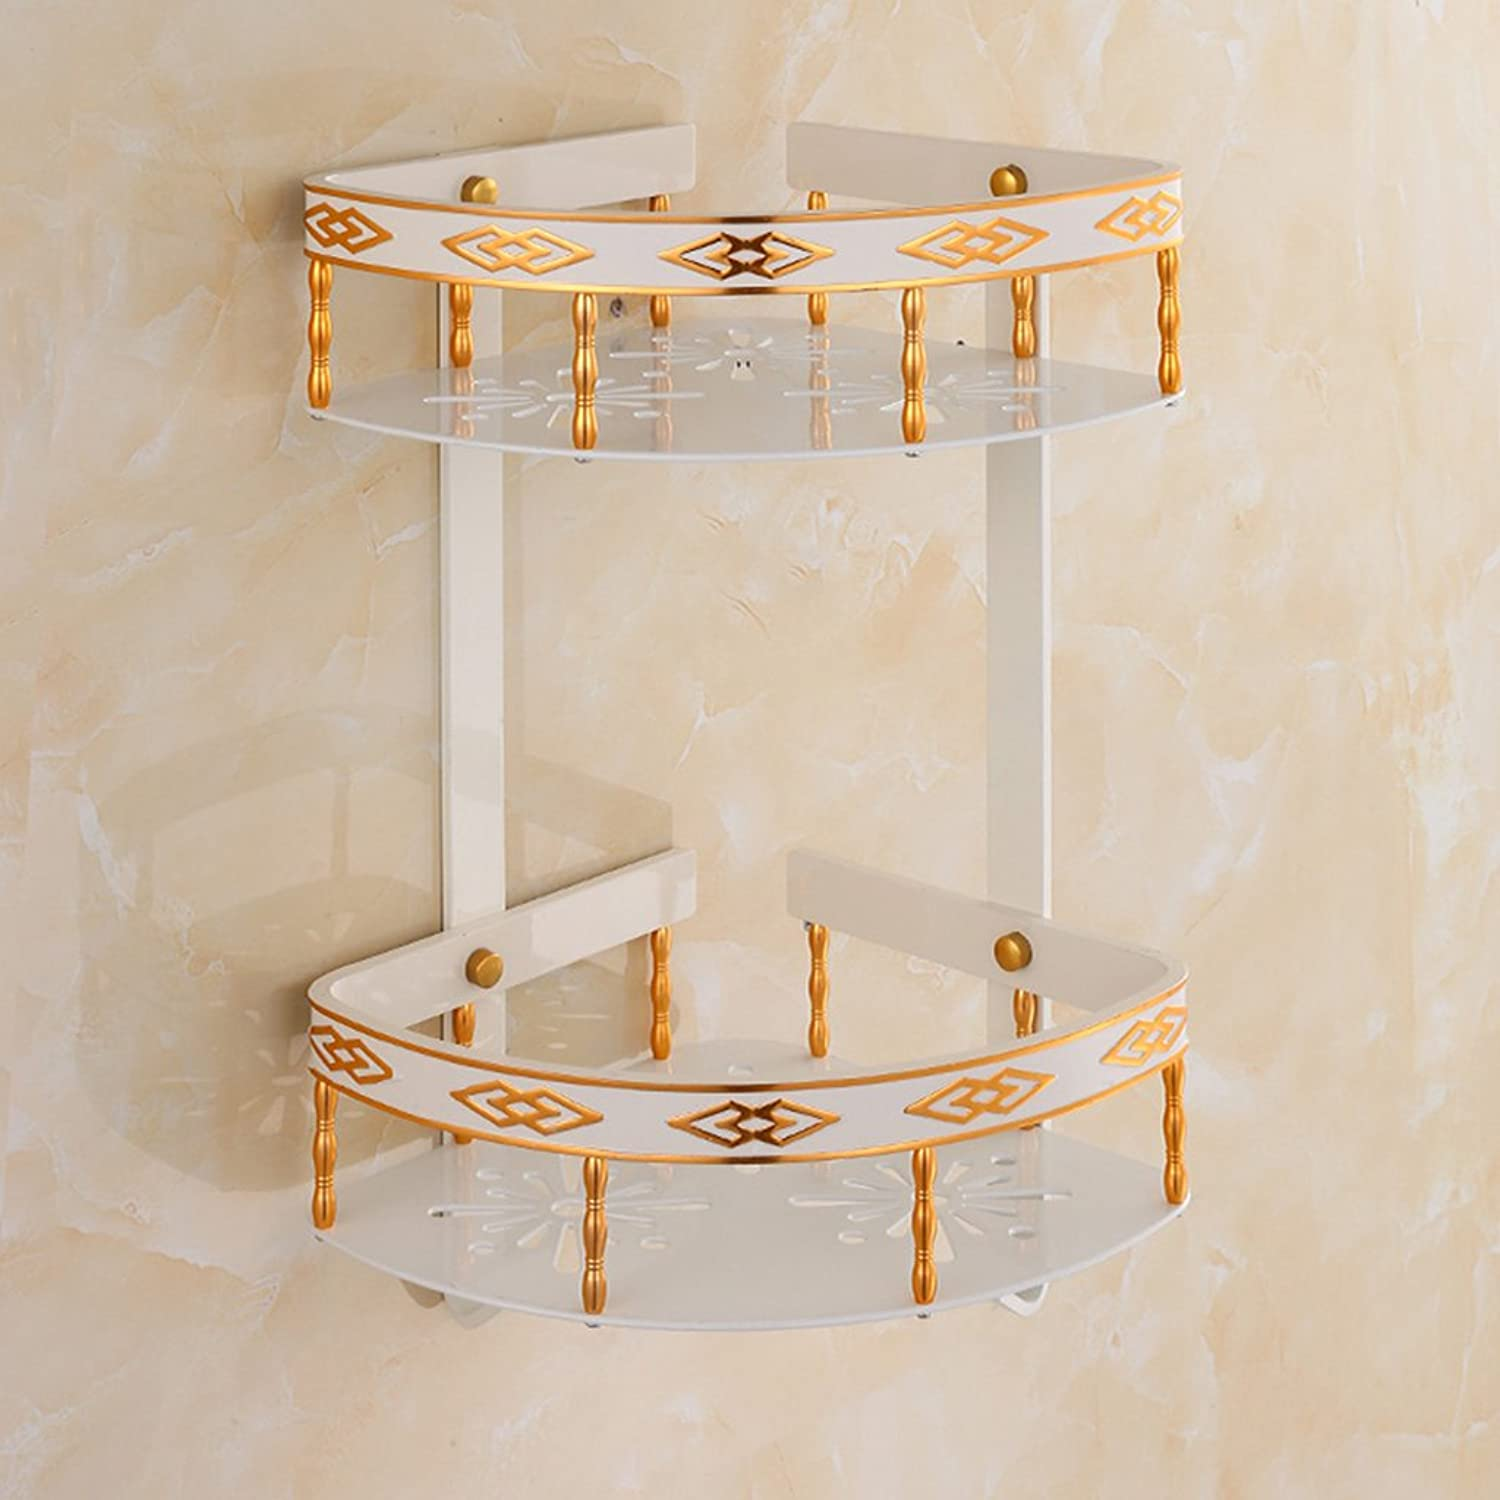 SYF Aluminum Baked White Lacquer Carved Triangle Basket Bathroom Wall Triangle Items Placed Rack (2 Floors) A+